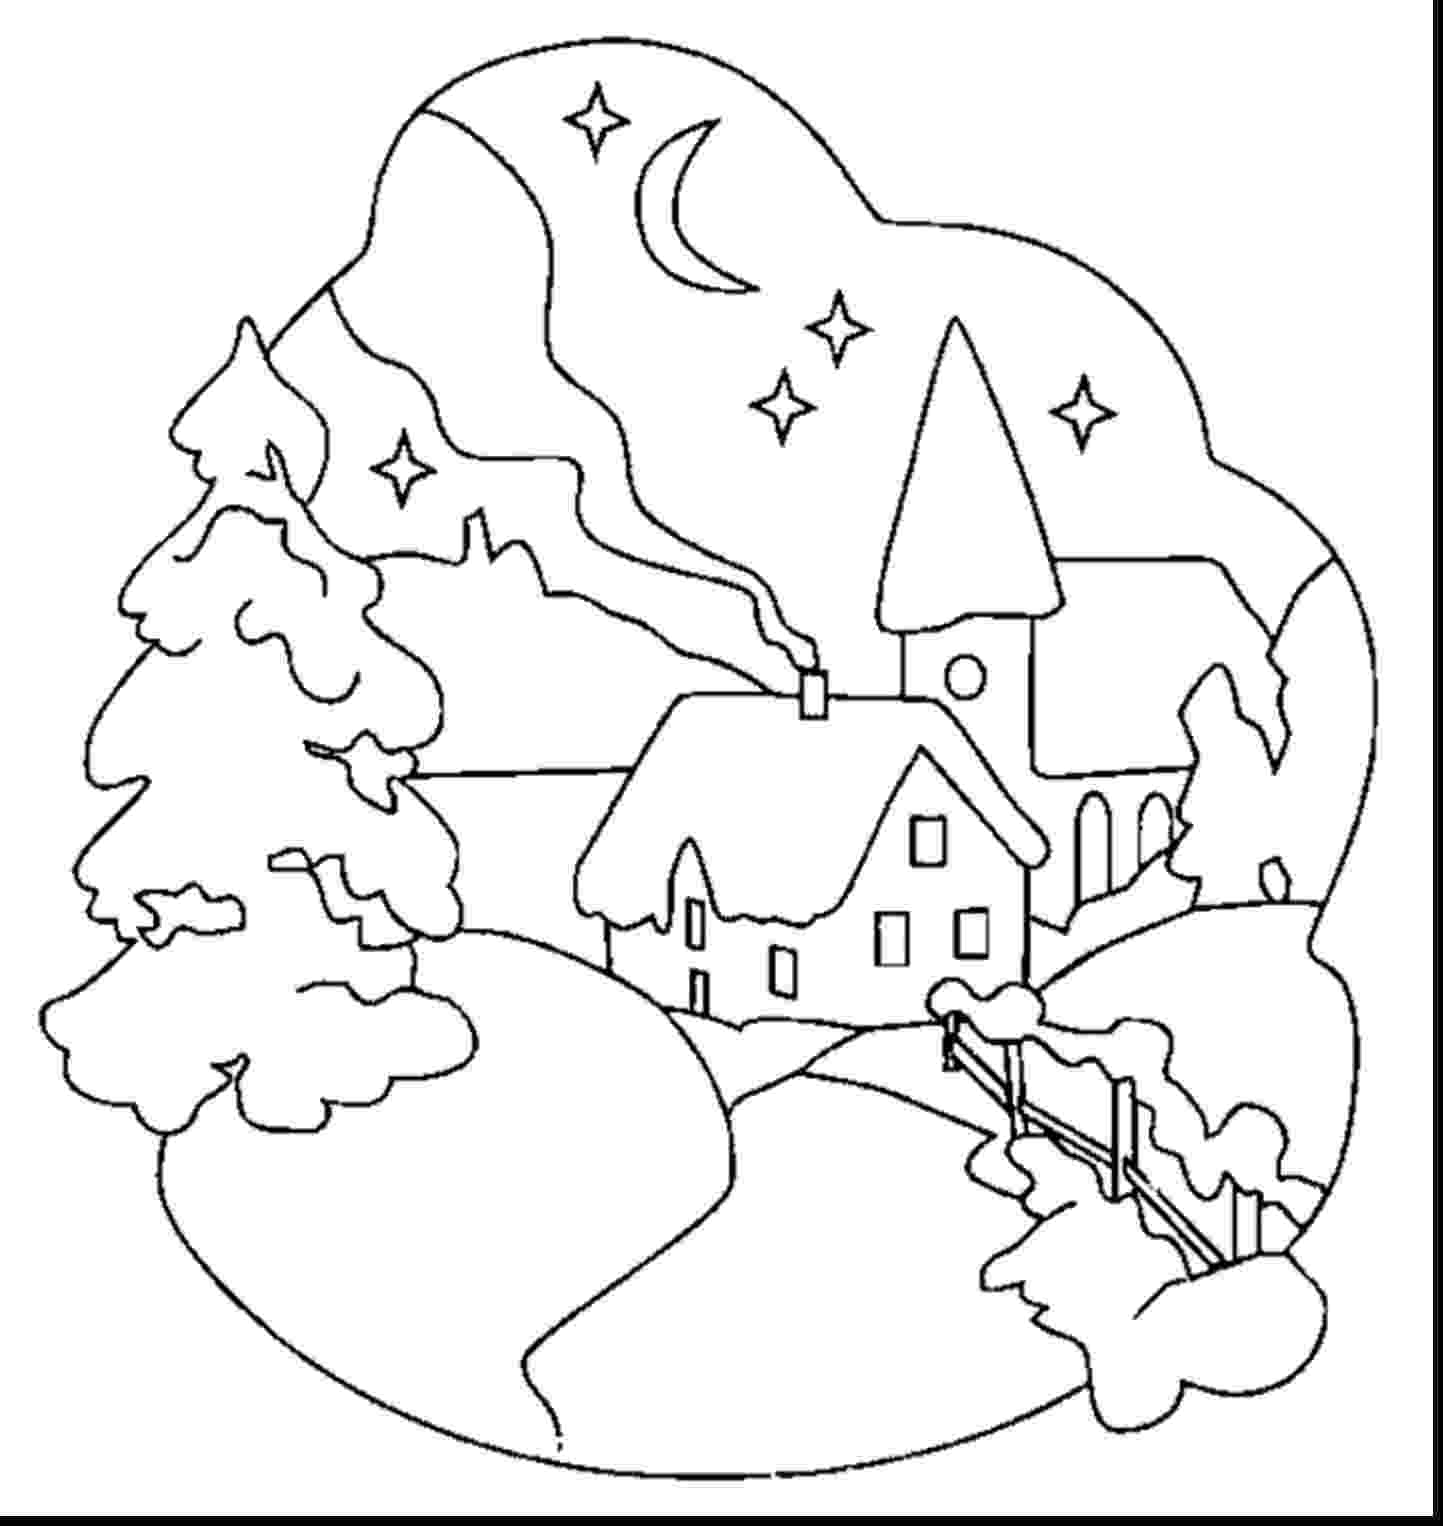 winter wonderland coloring pages two free winter wonderland printables for kids melissa winter wonderland pages coloring